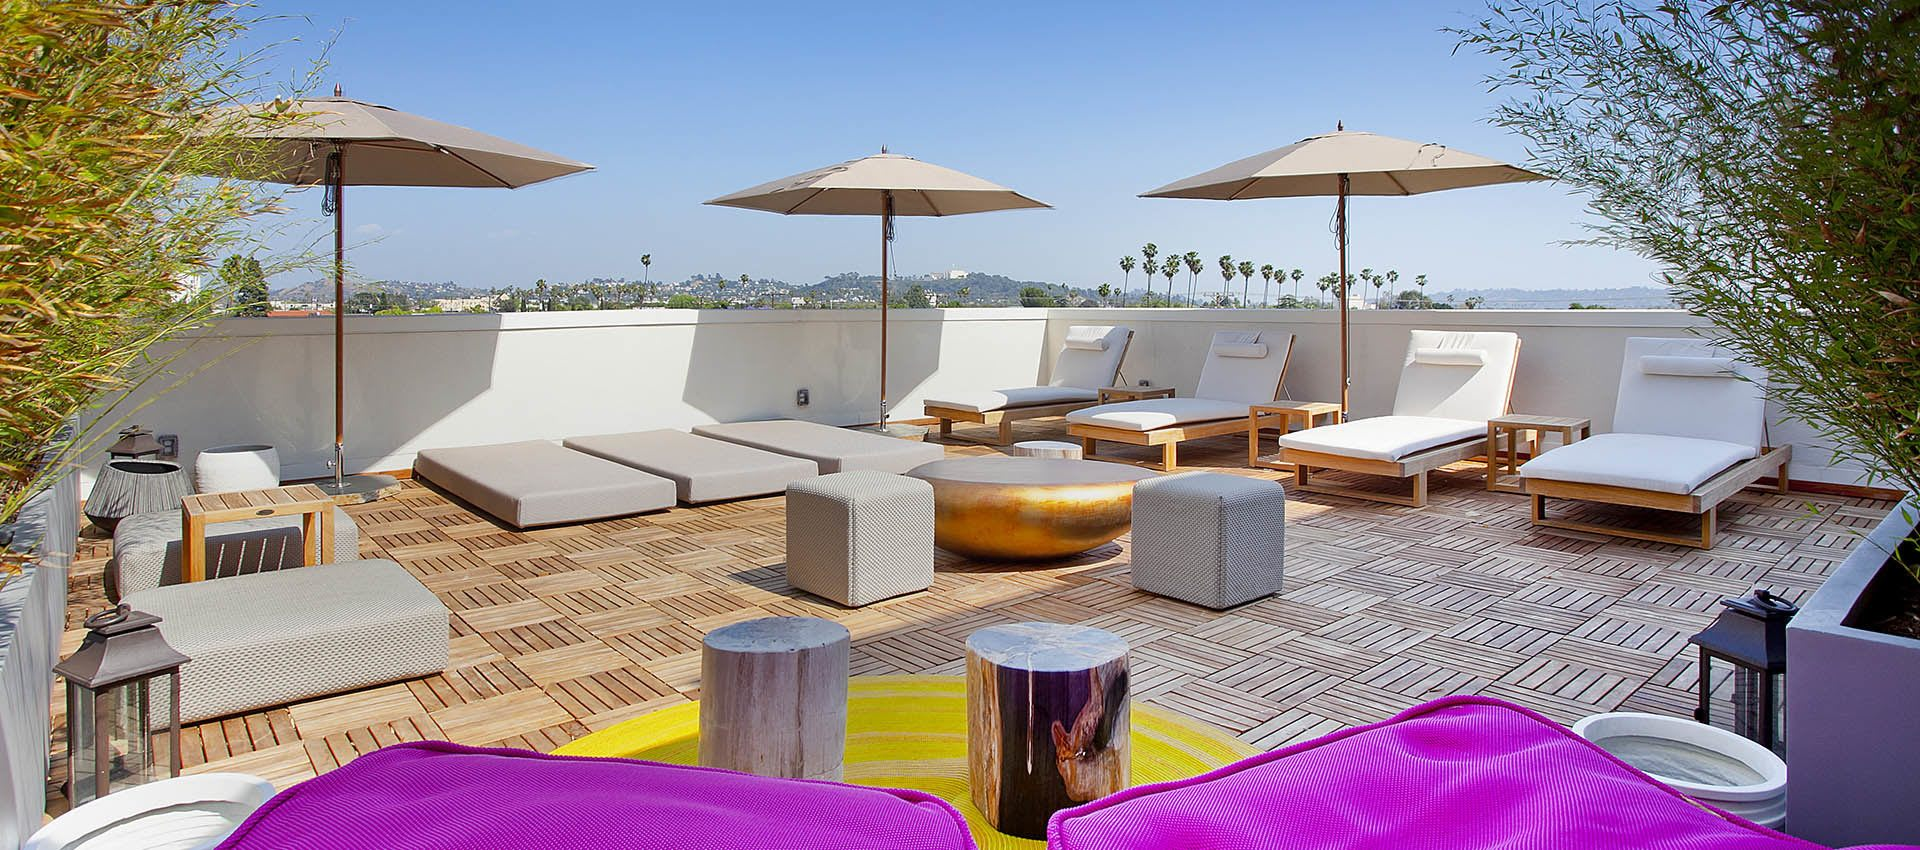 Rooftop lounge at Brio Apartment Homes